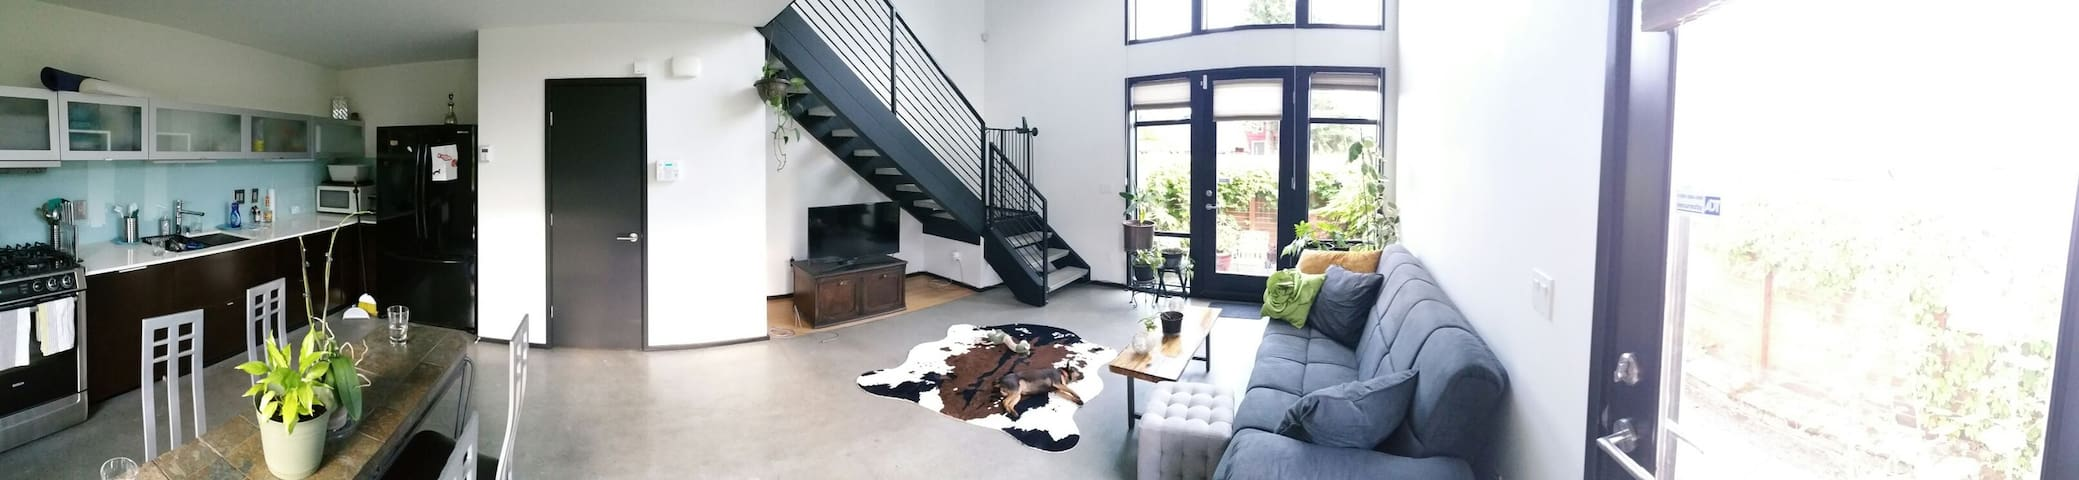 Urban Oasis 1 Bedroom Loft - Seattle - Loft